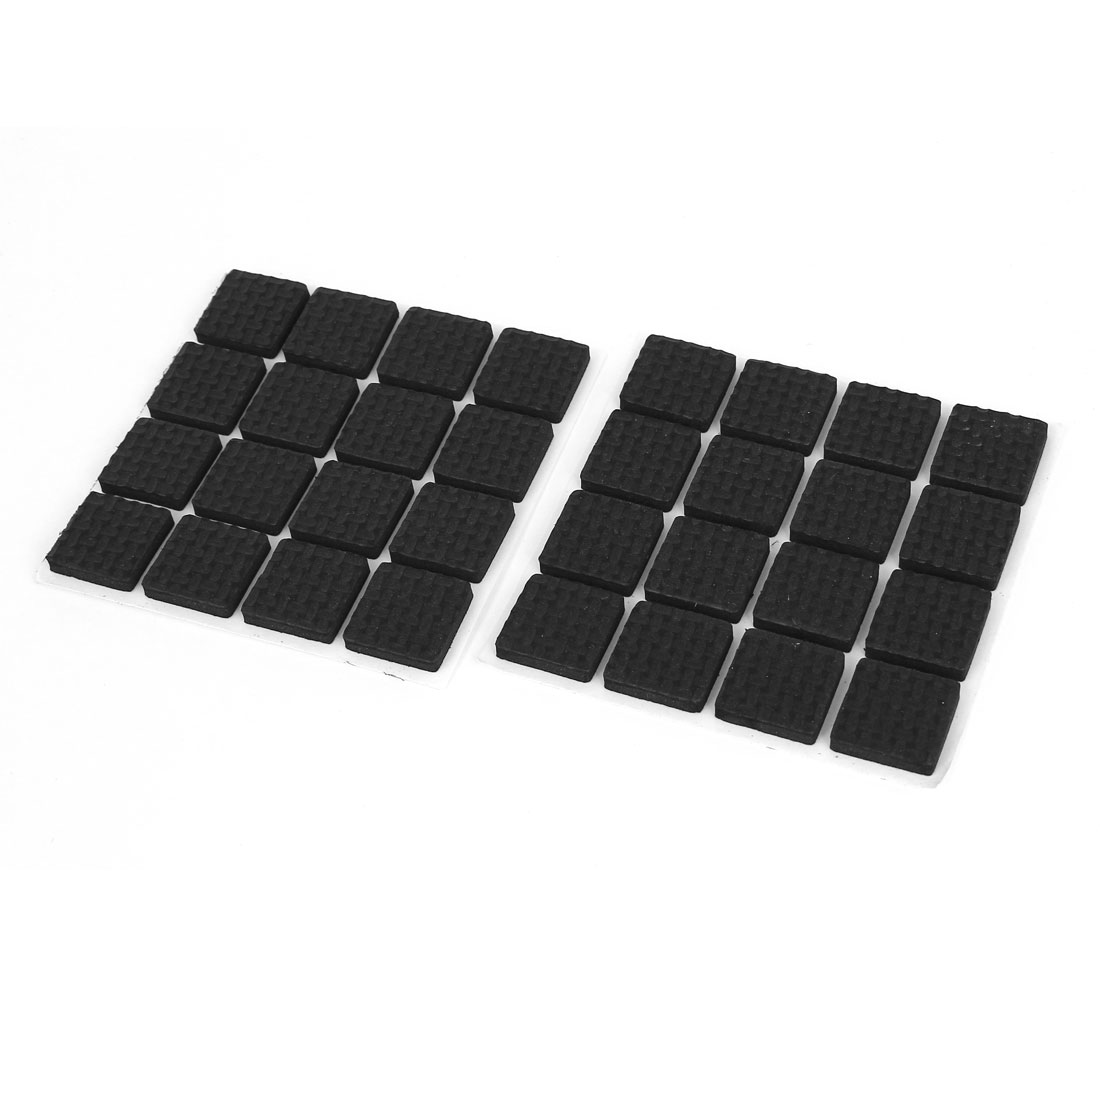 Furniture Table Feet Floor Protection Pads Adhesive Protectors Black 18mm 32pcs